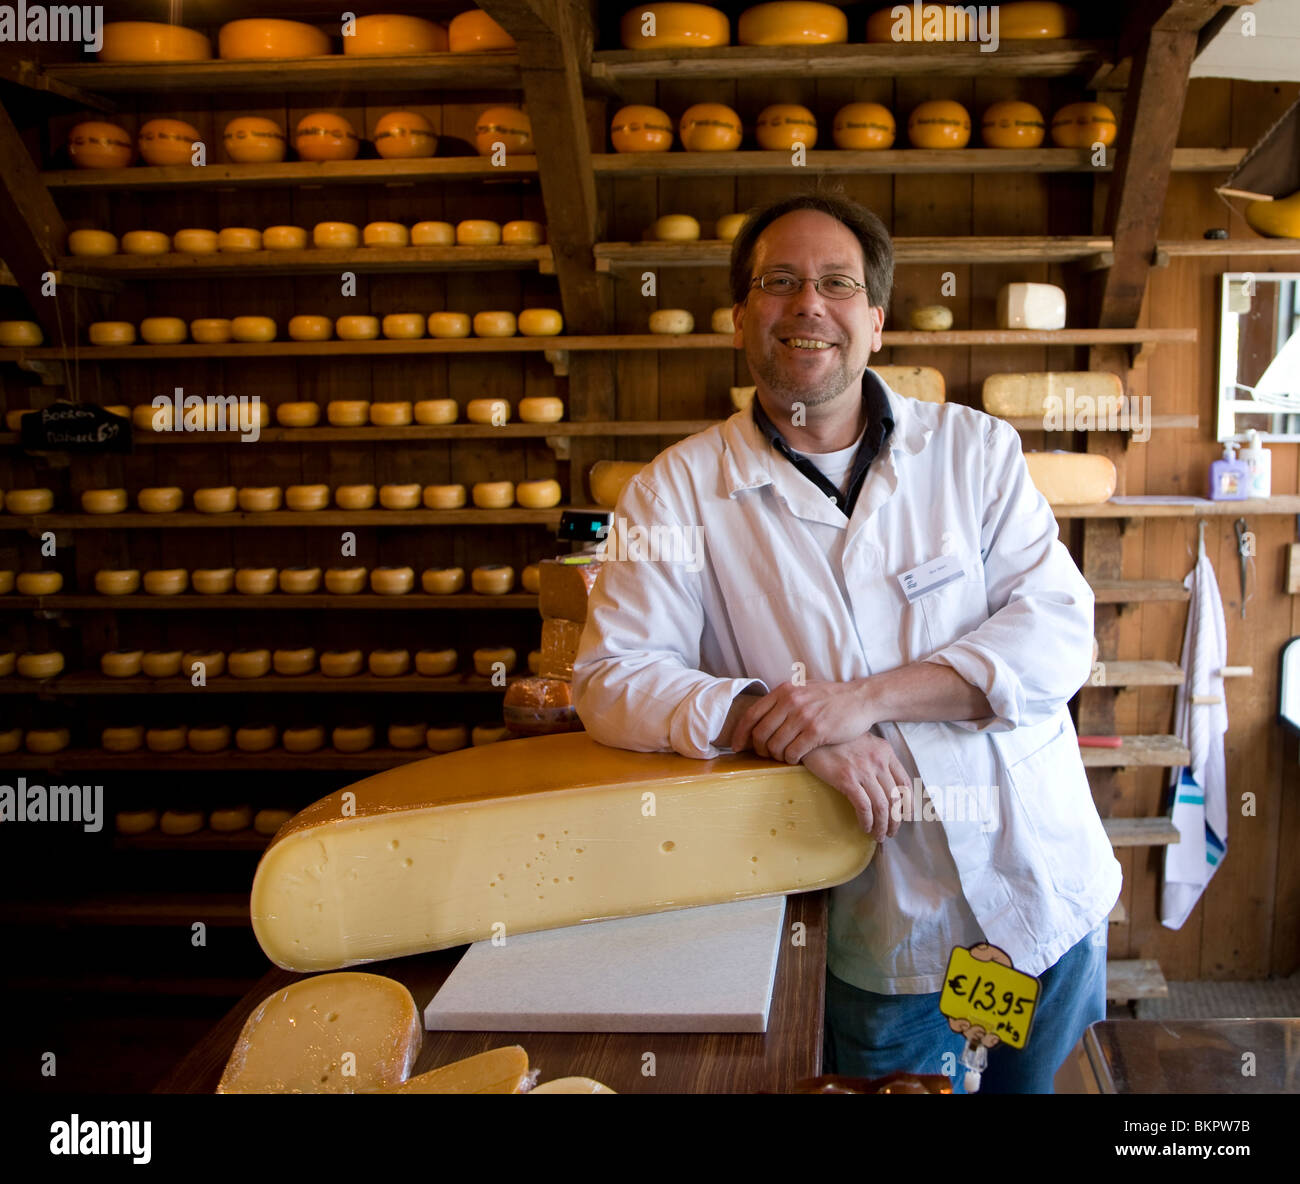 Shopkeeper in cheese shop and warehouse, Zuiderzee museum, Enkhuizen, Netherlands - Stock Image